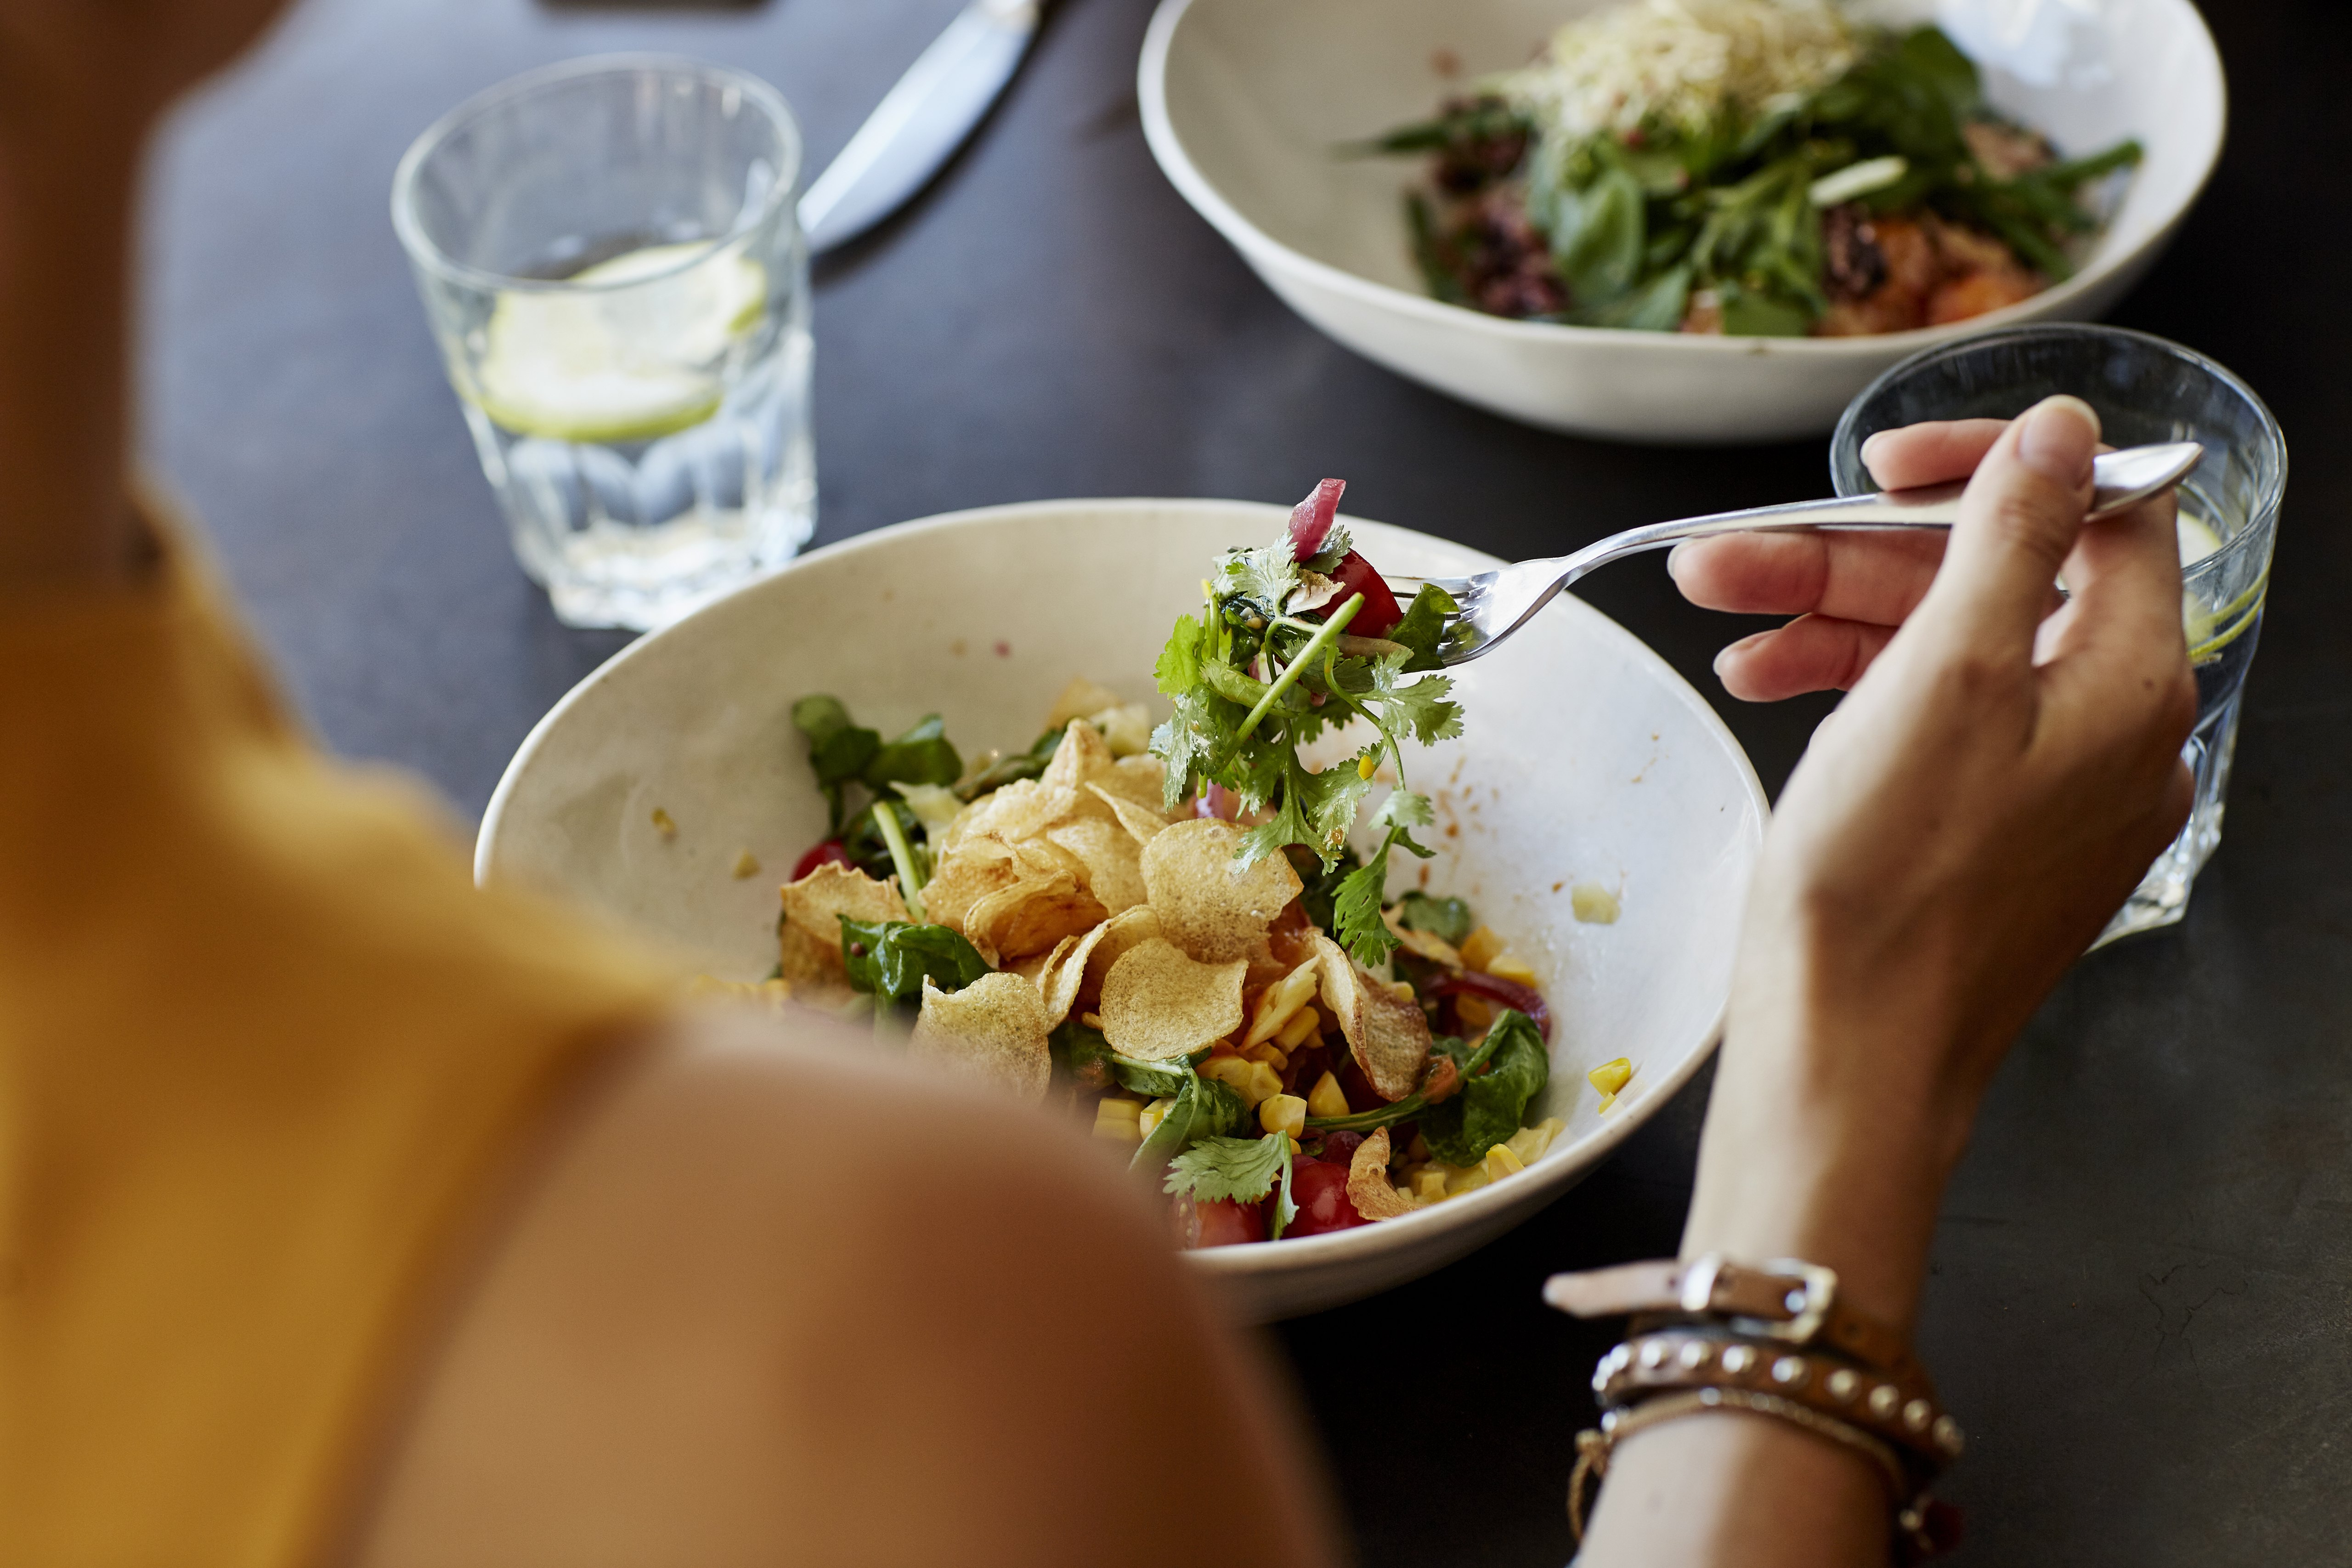 7 Diet 'Rules' Nutritionists Want You to Stop Following